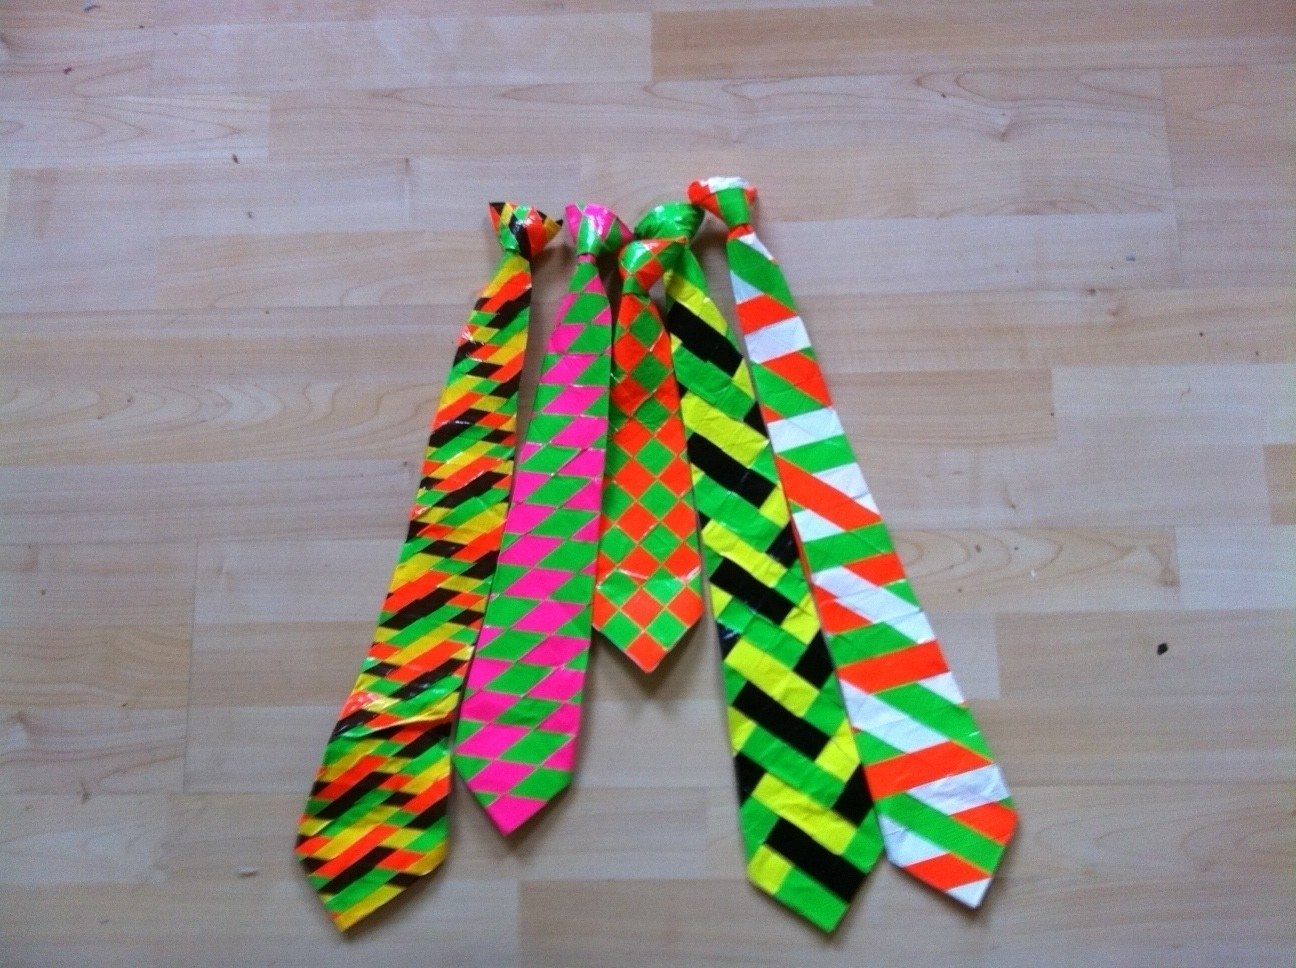 10 Attractive Duct Tape Ideas For Boys 32 fabulous duct tape crafts that will satisfy you photos 2021